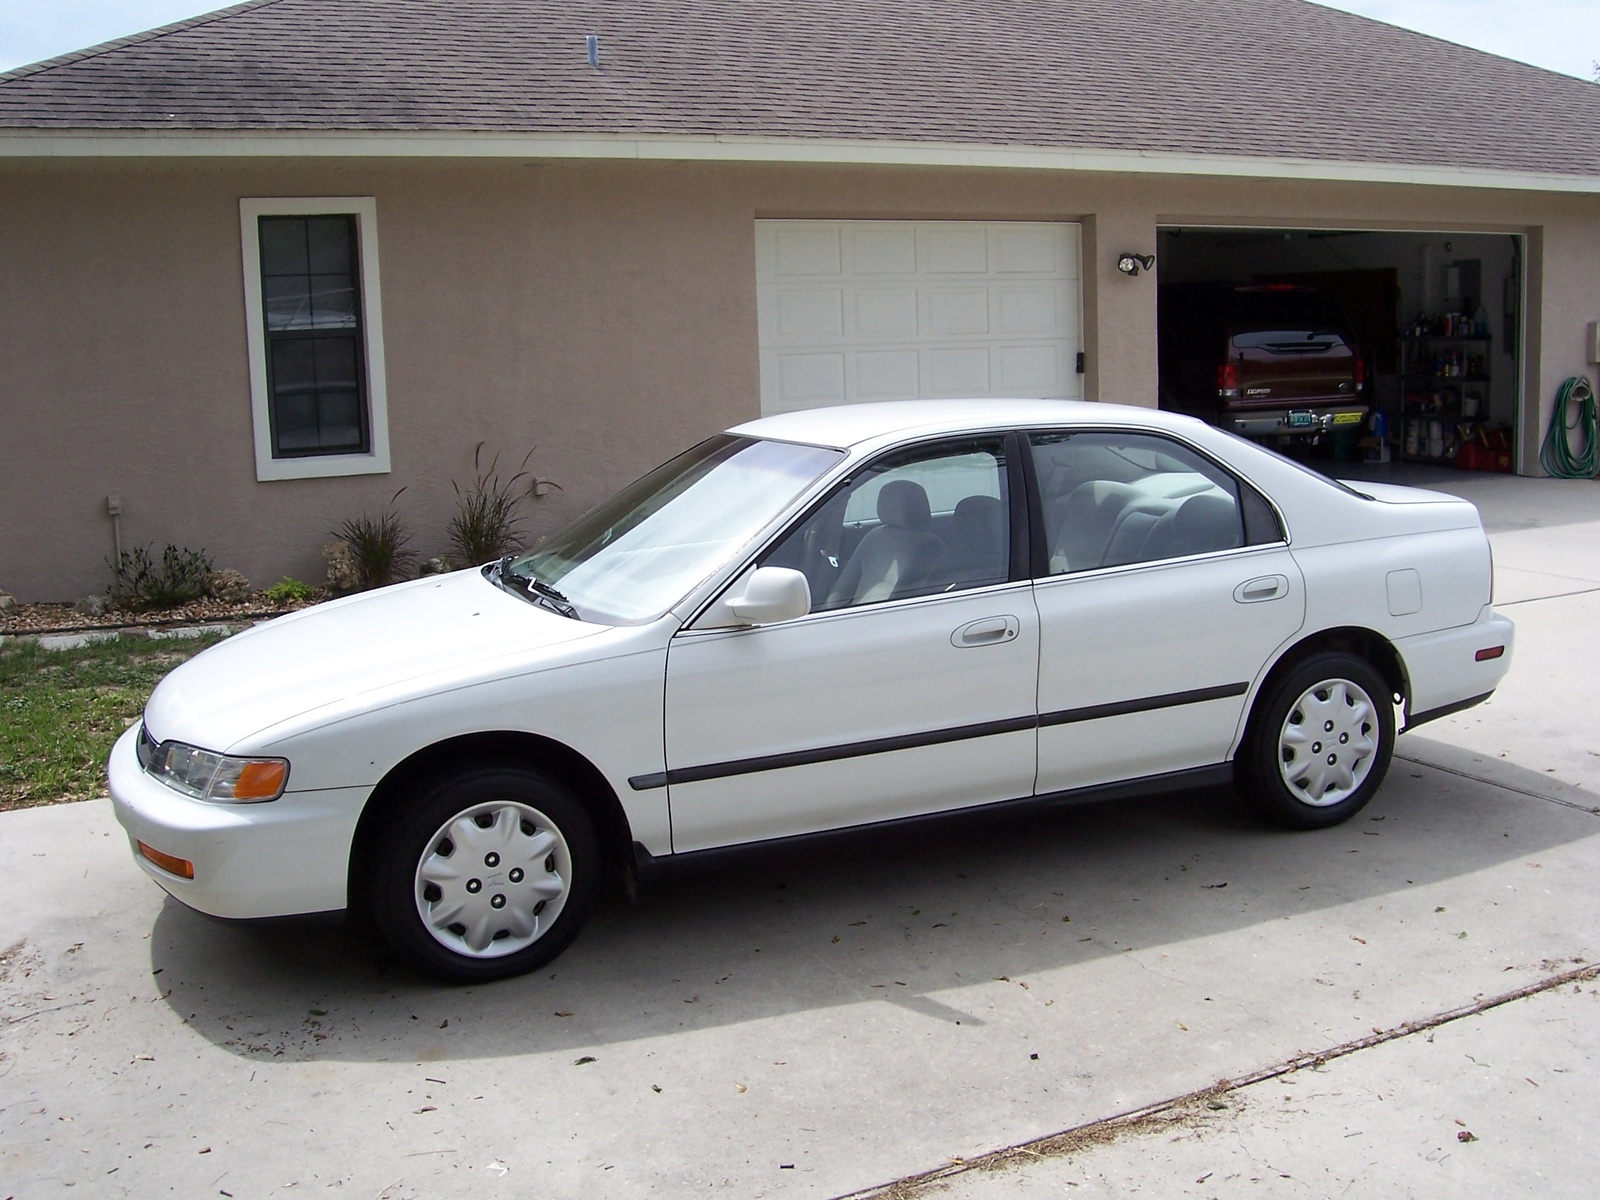 1997 Honda Accord 4 Dr LX Sedan picture